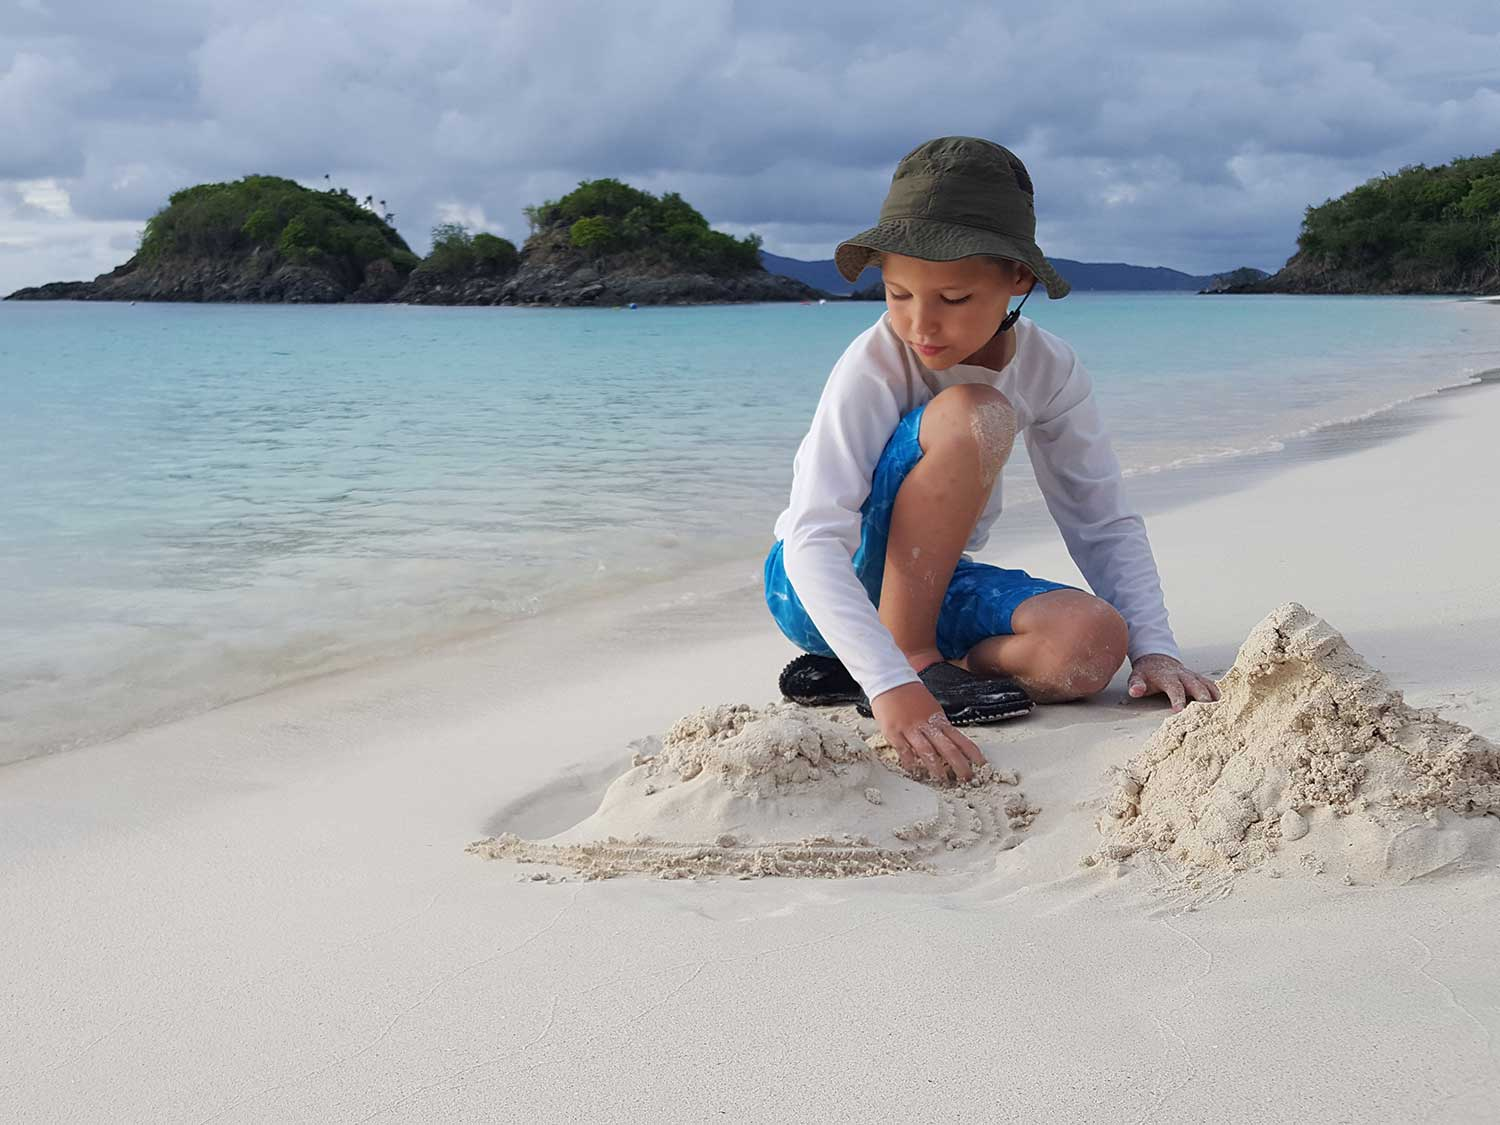 Kid in sand on beach wearing sun hat.